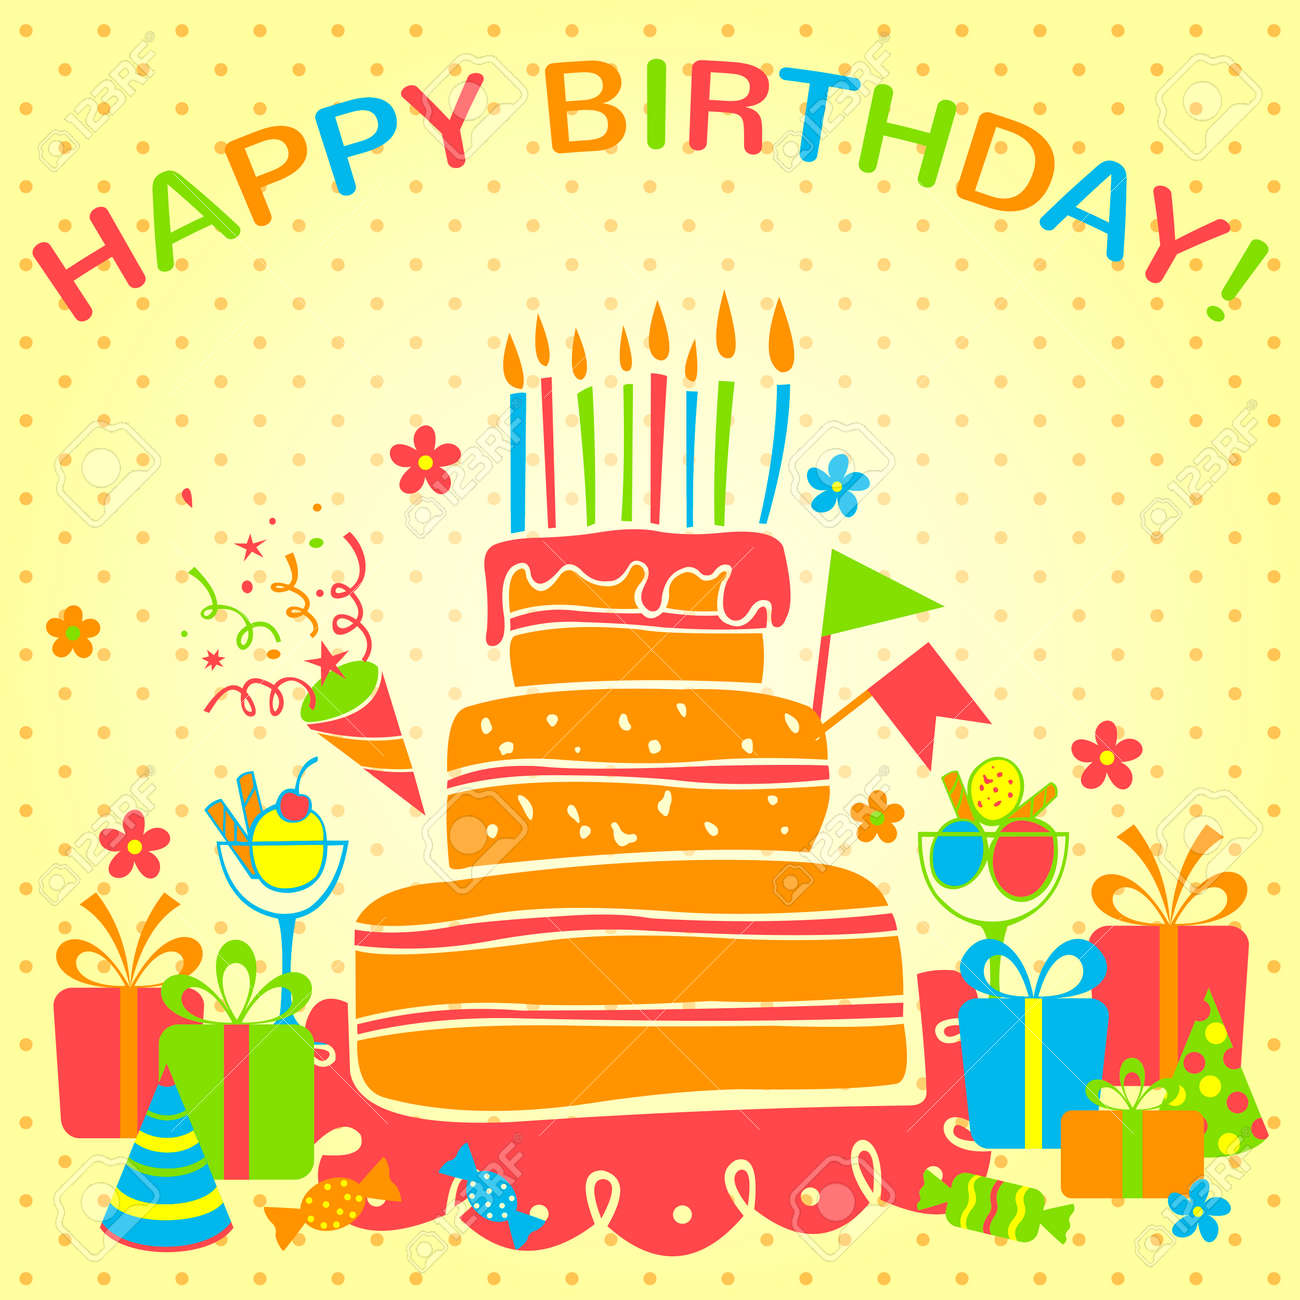 Happy Birthday Card With Cake And Gifts Vector Illustration Royalty